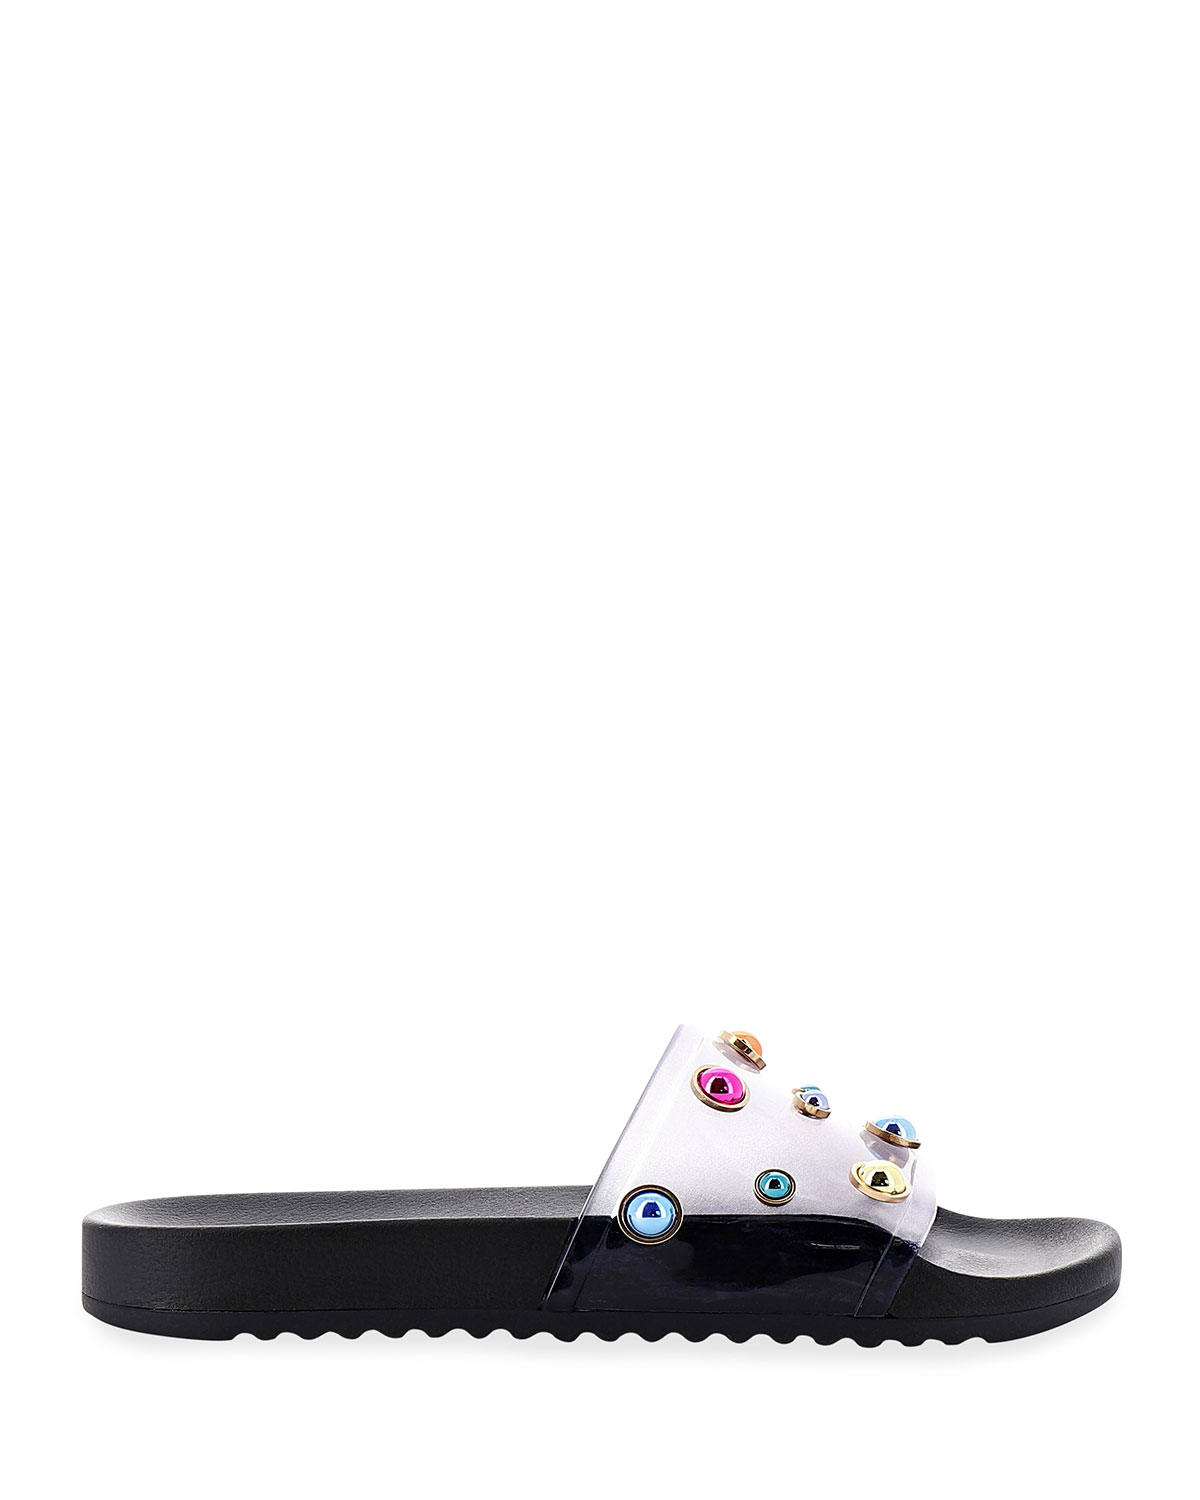 Sophia Webster DINA CRYSTAL-STUD FLAT SANDALS